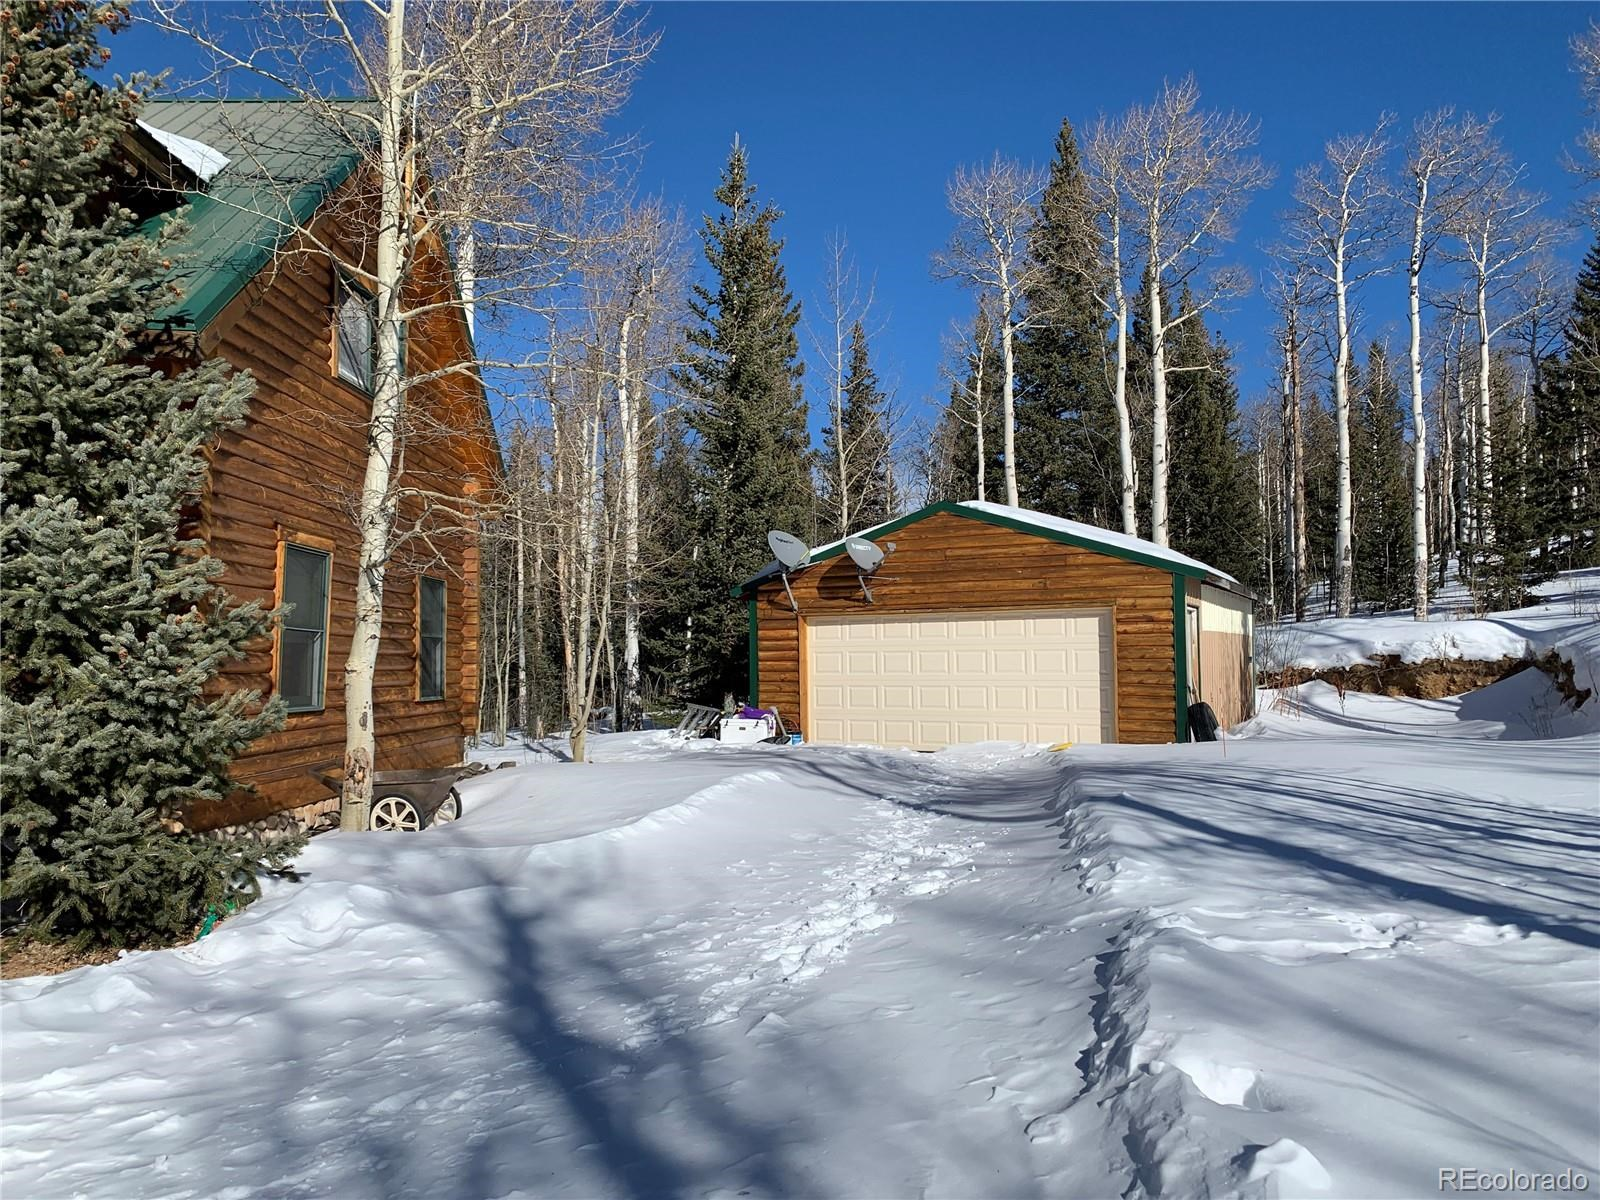 MLS# 4464810 - 152 Glacier Peak View, Jefferson, CO 80456